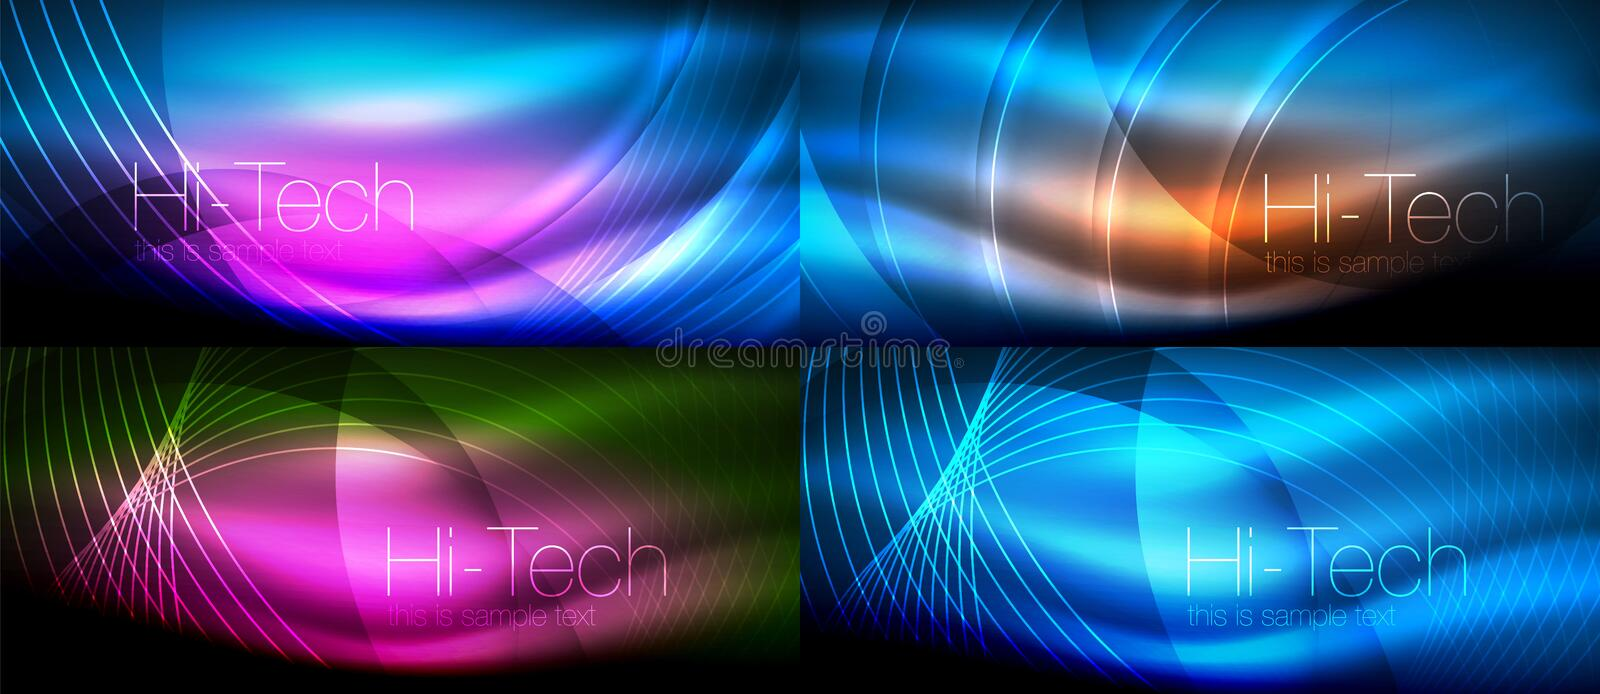 Neon glowing light abstract backgrounds collection, mega set of energy magic concept backgrounds. Vector illustration stock illustration